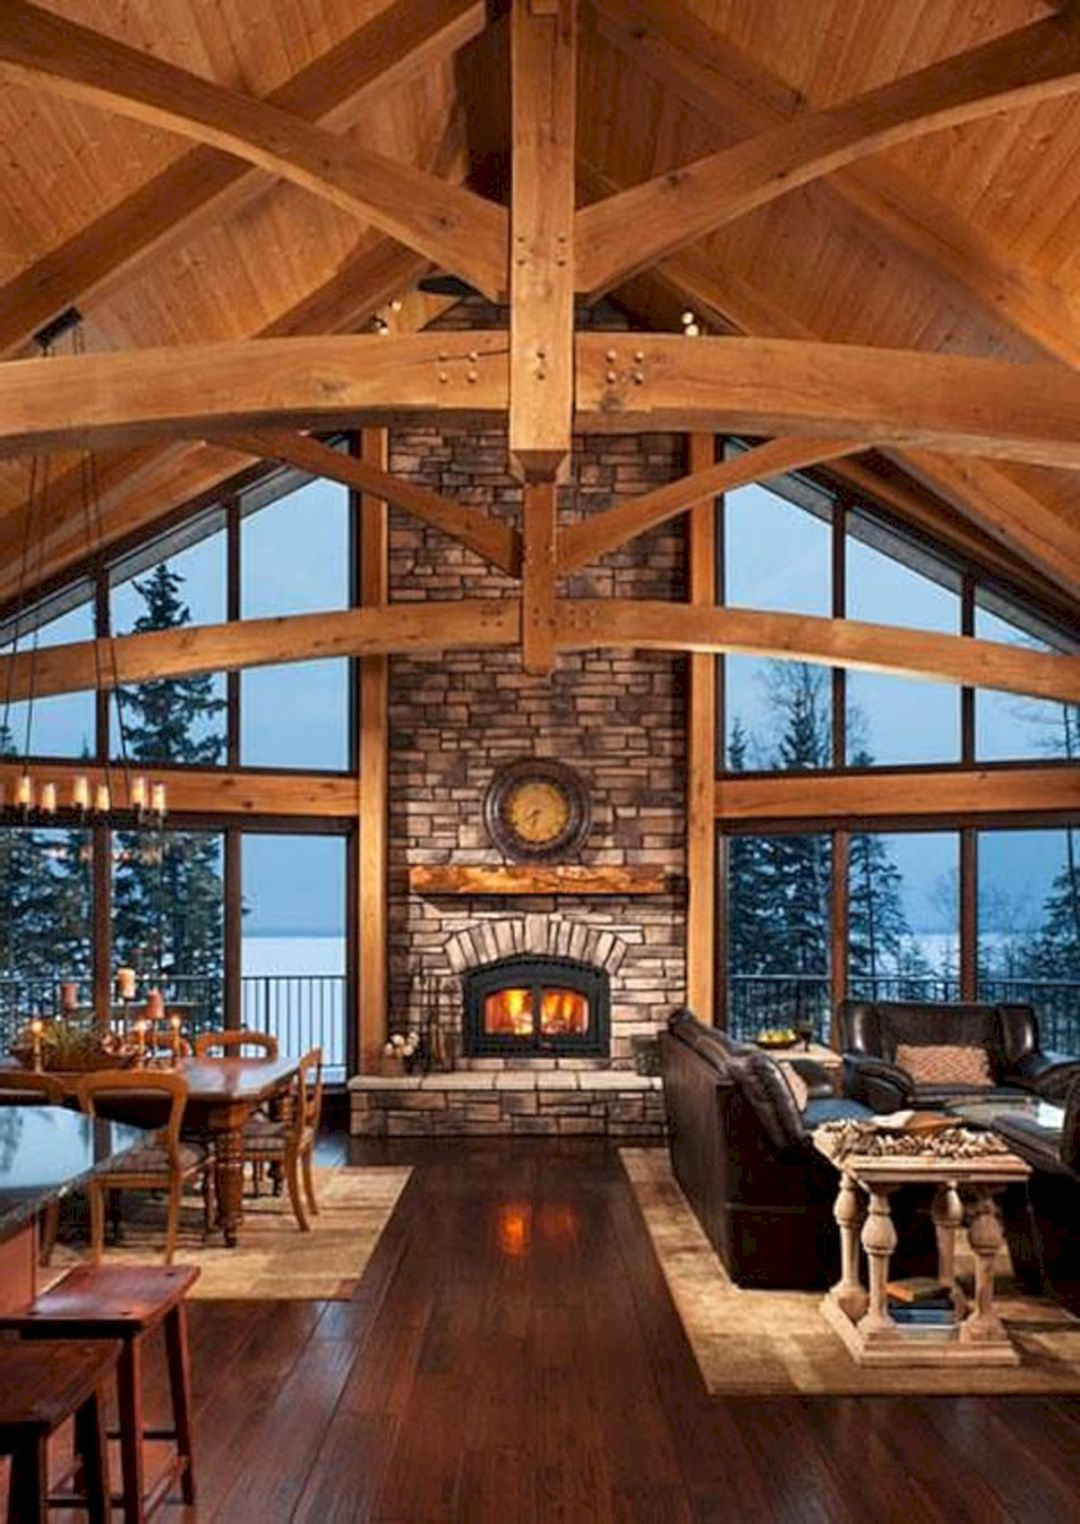 49 Superb Cozy and Rustic Cabin Style Living Rooms Ideas / FresHOUZ.com #livingroomideas